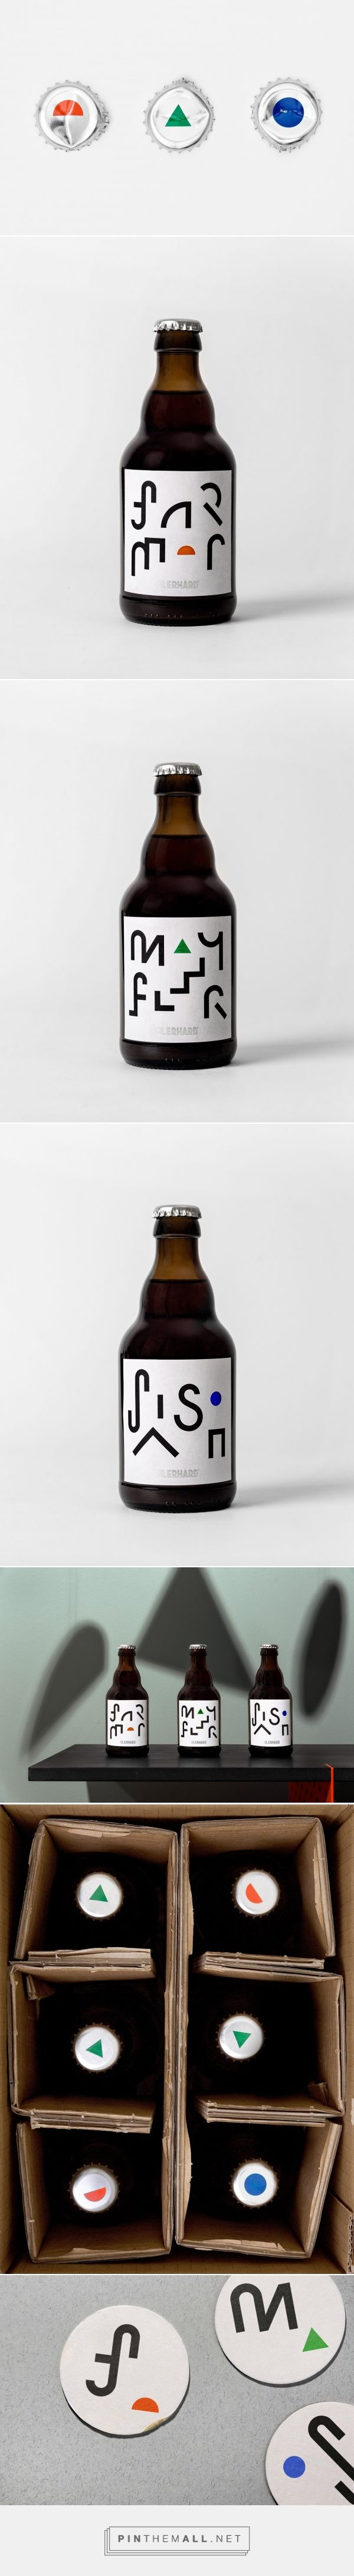 St Erhard beer packaging design by Bedow - http://www.packagingoftheworld.com/2018/02/st-erhard.html